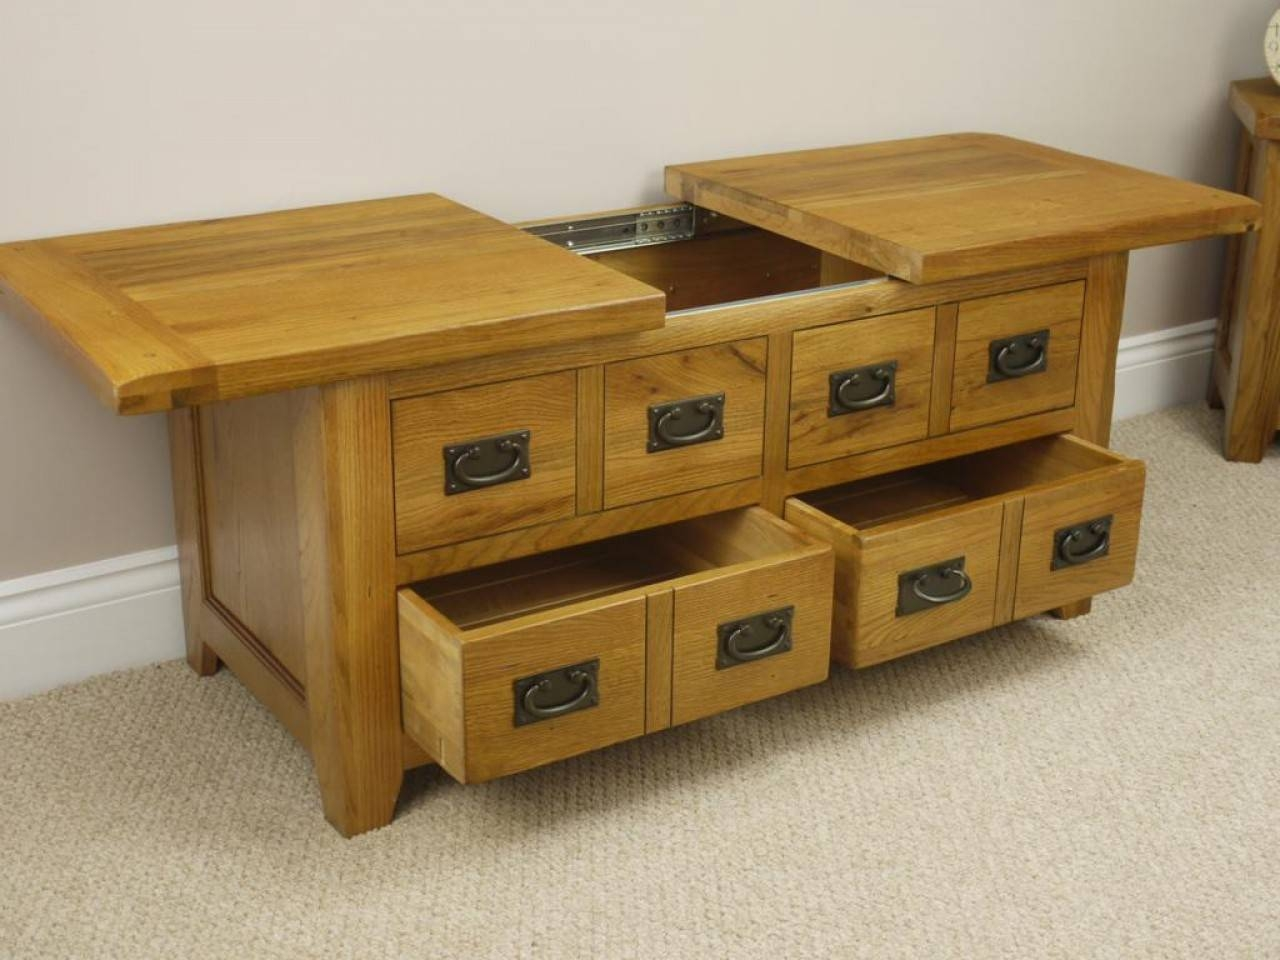 Large Square Oak Coffee Table With Storage | Coffee Tables Decoration intended for Square Storage Coffee Tables (Image 21 of 30)